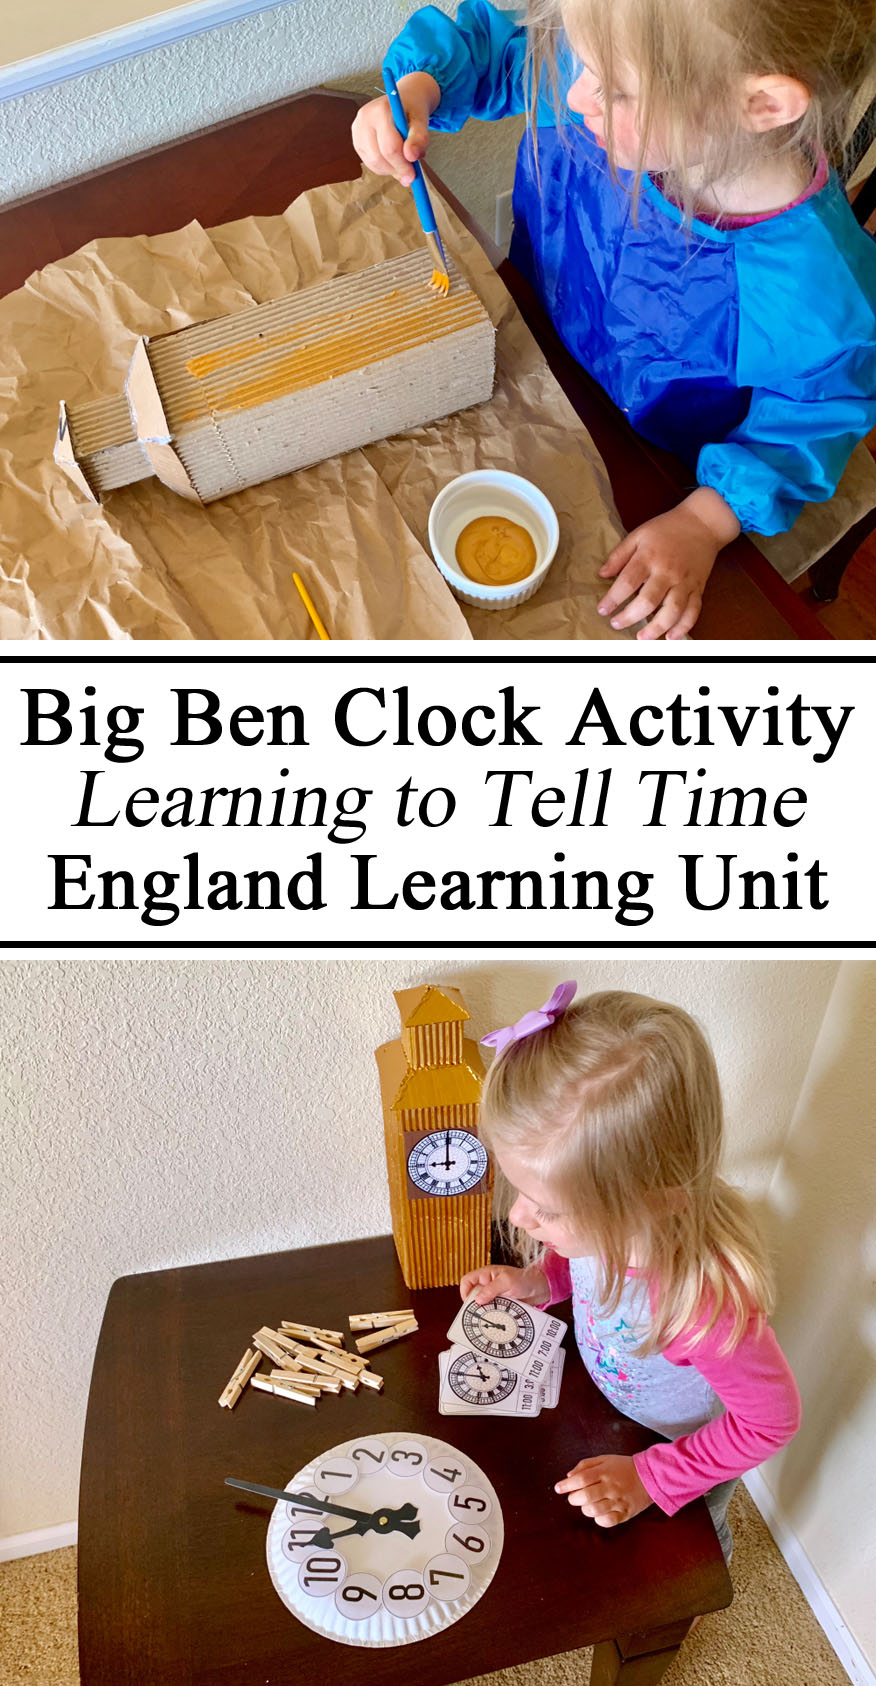 Montessori, Inspired, Waldorf, Activities, Printables, Free, Download, Resources, Preschool, Kindergarten, Activities, FREE Unit, Study, #travelingthroughlearning, England Unit, Great Britain, Culture Through Play, Clock, Telling Time, Teach Learn, Pinning Work, Fine Motor Skills, Hands on Learning, Models, Unschooling, Unschool, Teach them young,